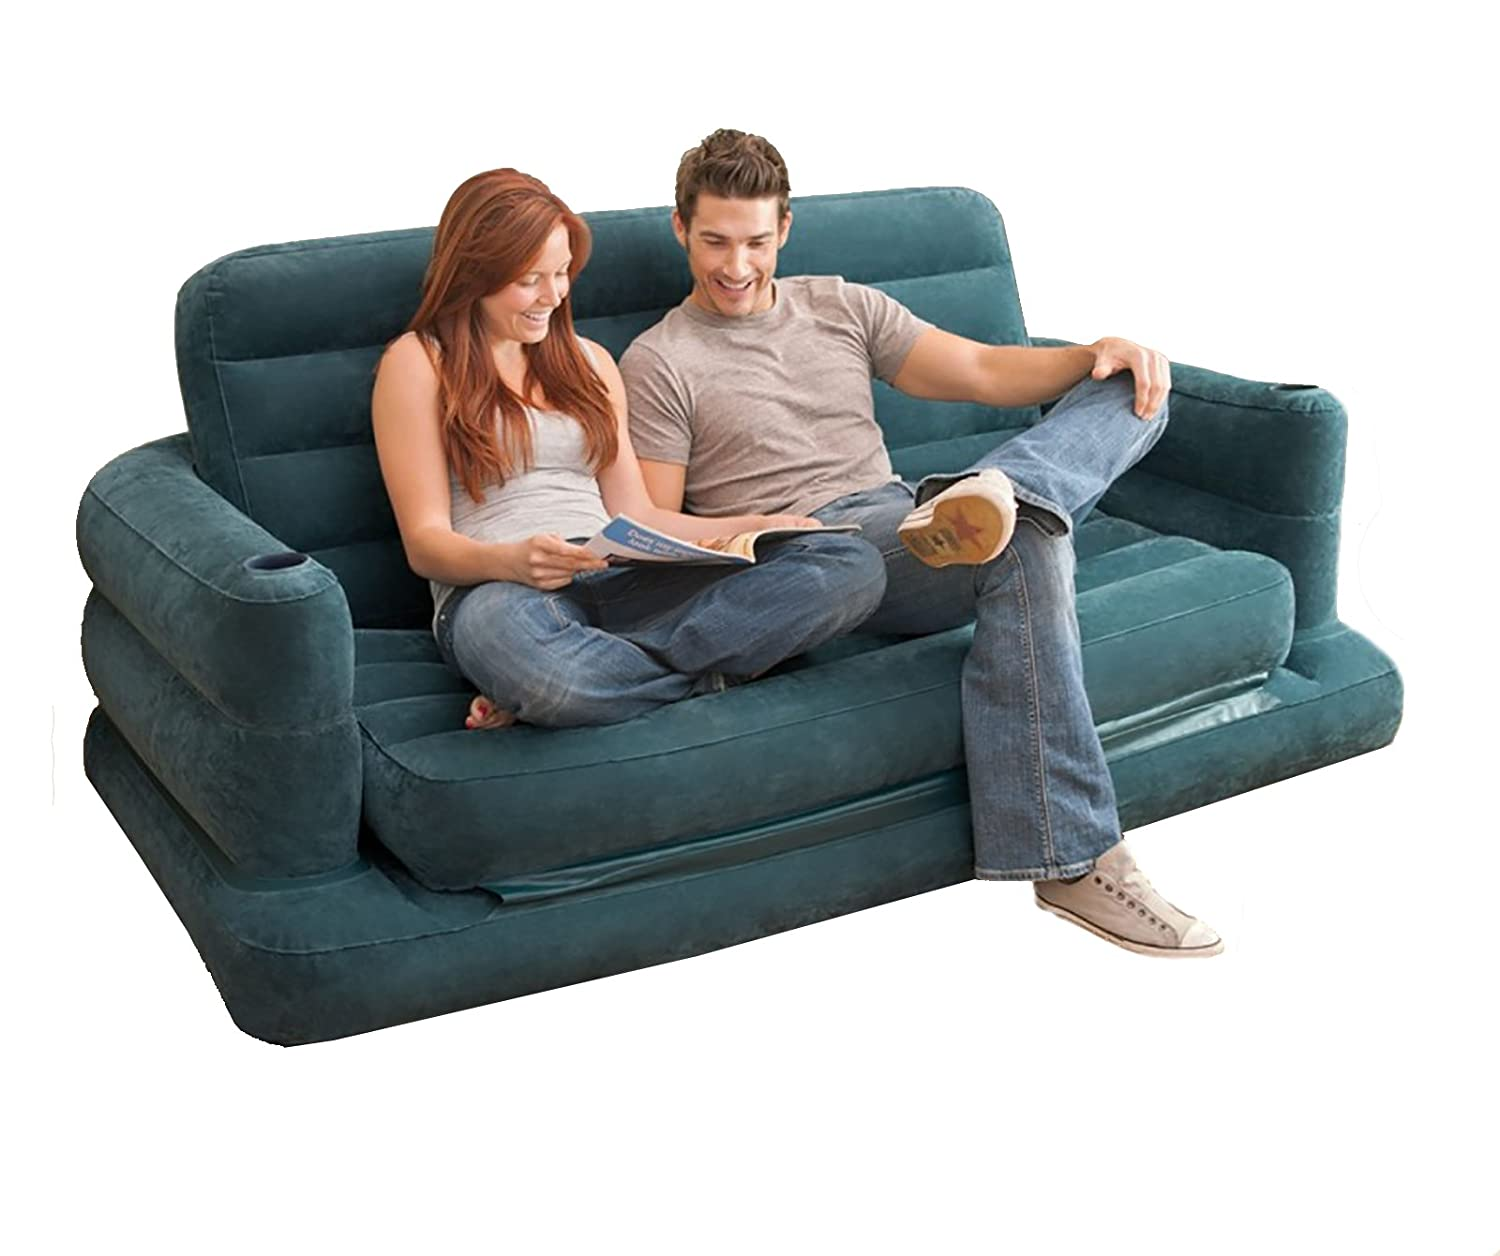 Intex Sofa 28 Images Intex Sofa Flocking Lounge Up Sofa 68560e Corner Sofa Sectional Intex